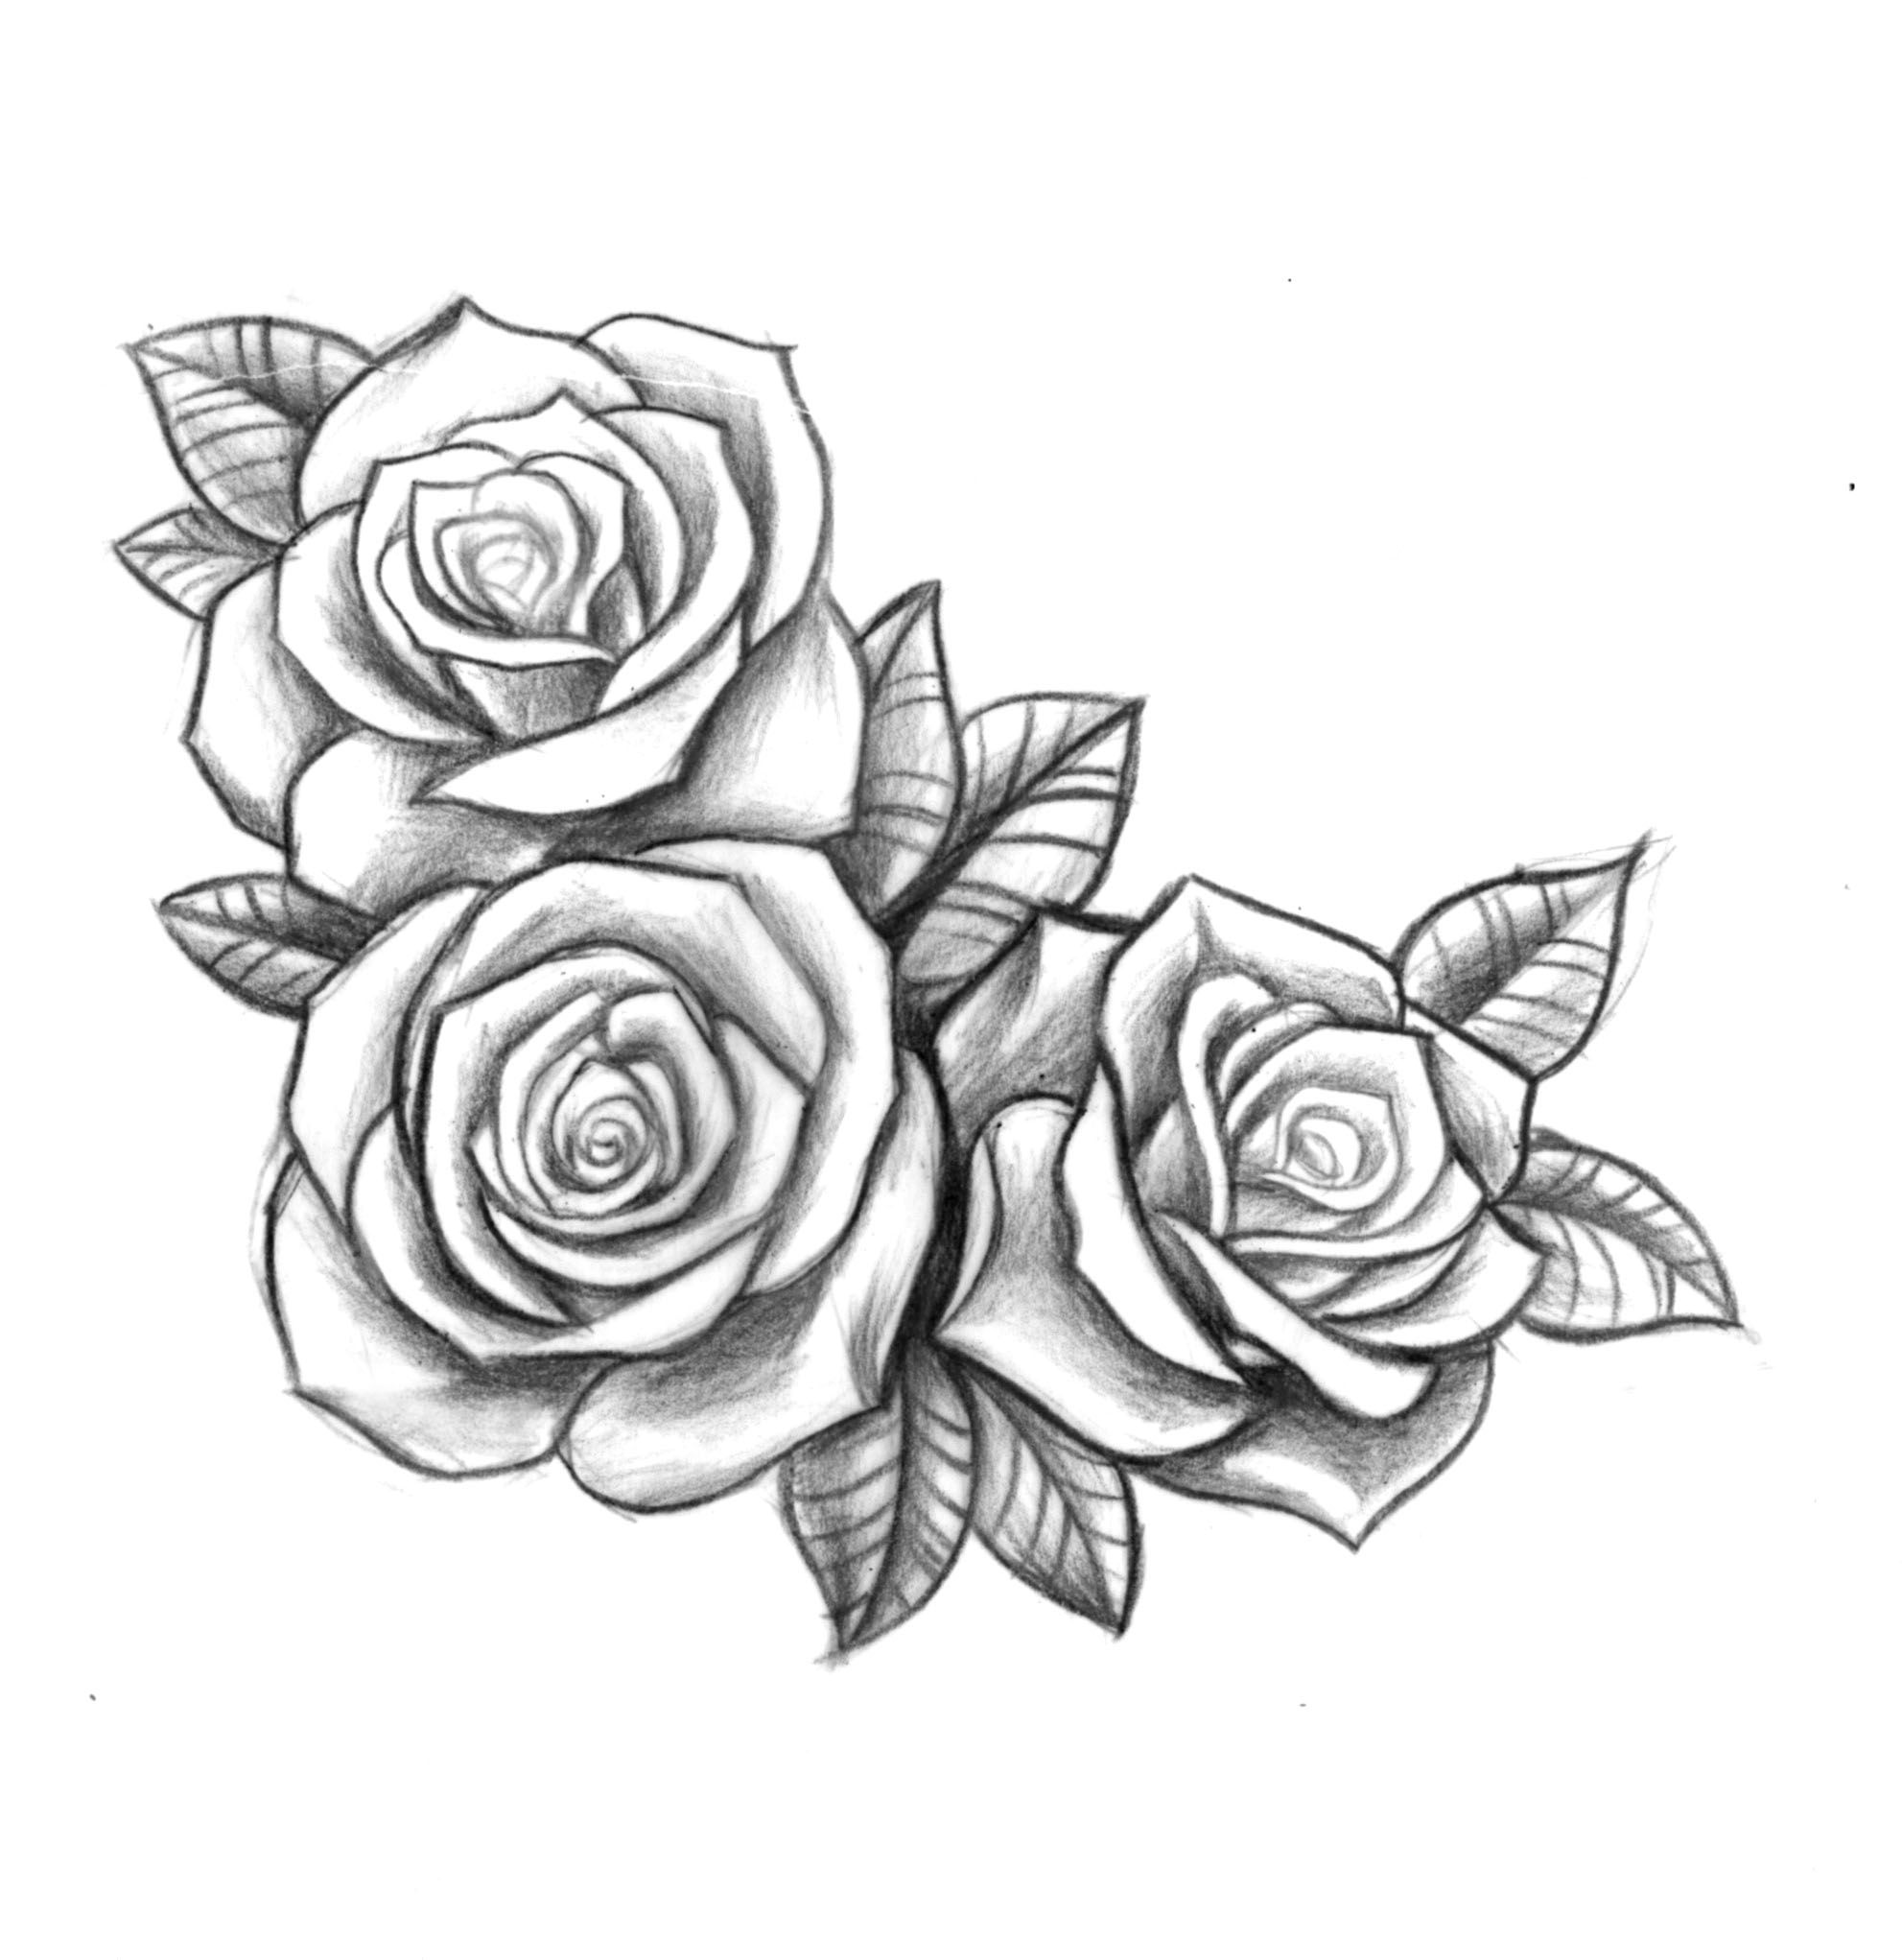 Custom Roses For Bec Tattoos Rose Drawing Tattoo Ideas And Designs